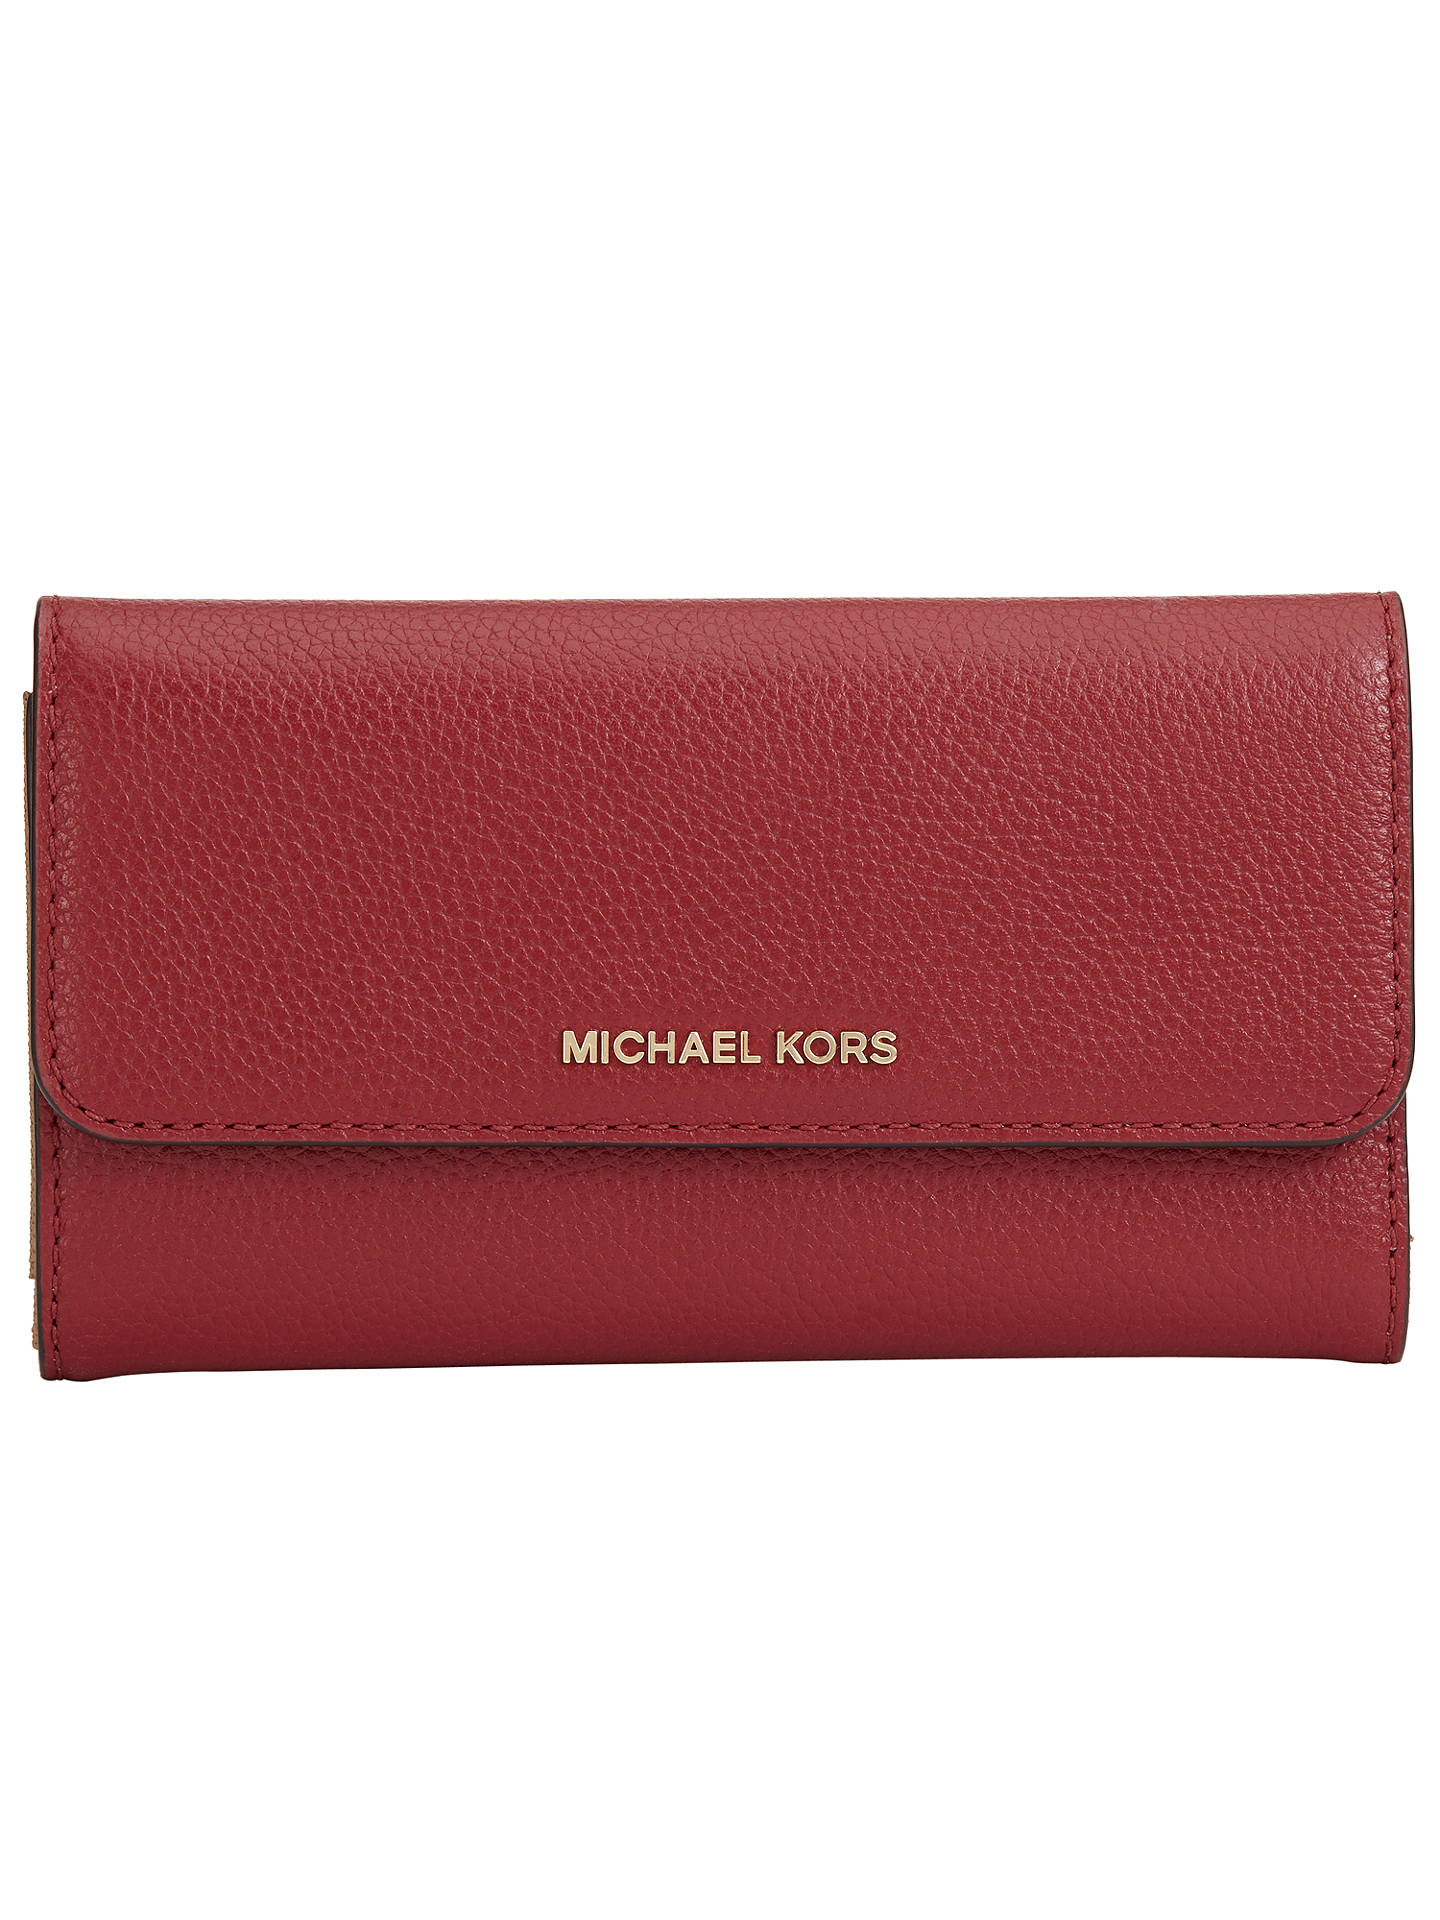 d5917e21a3a0f MICHAEL Michael Kors Mercer Large Leather Trifold Purse at John ...